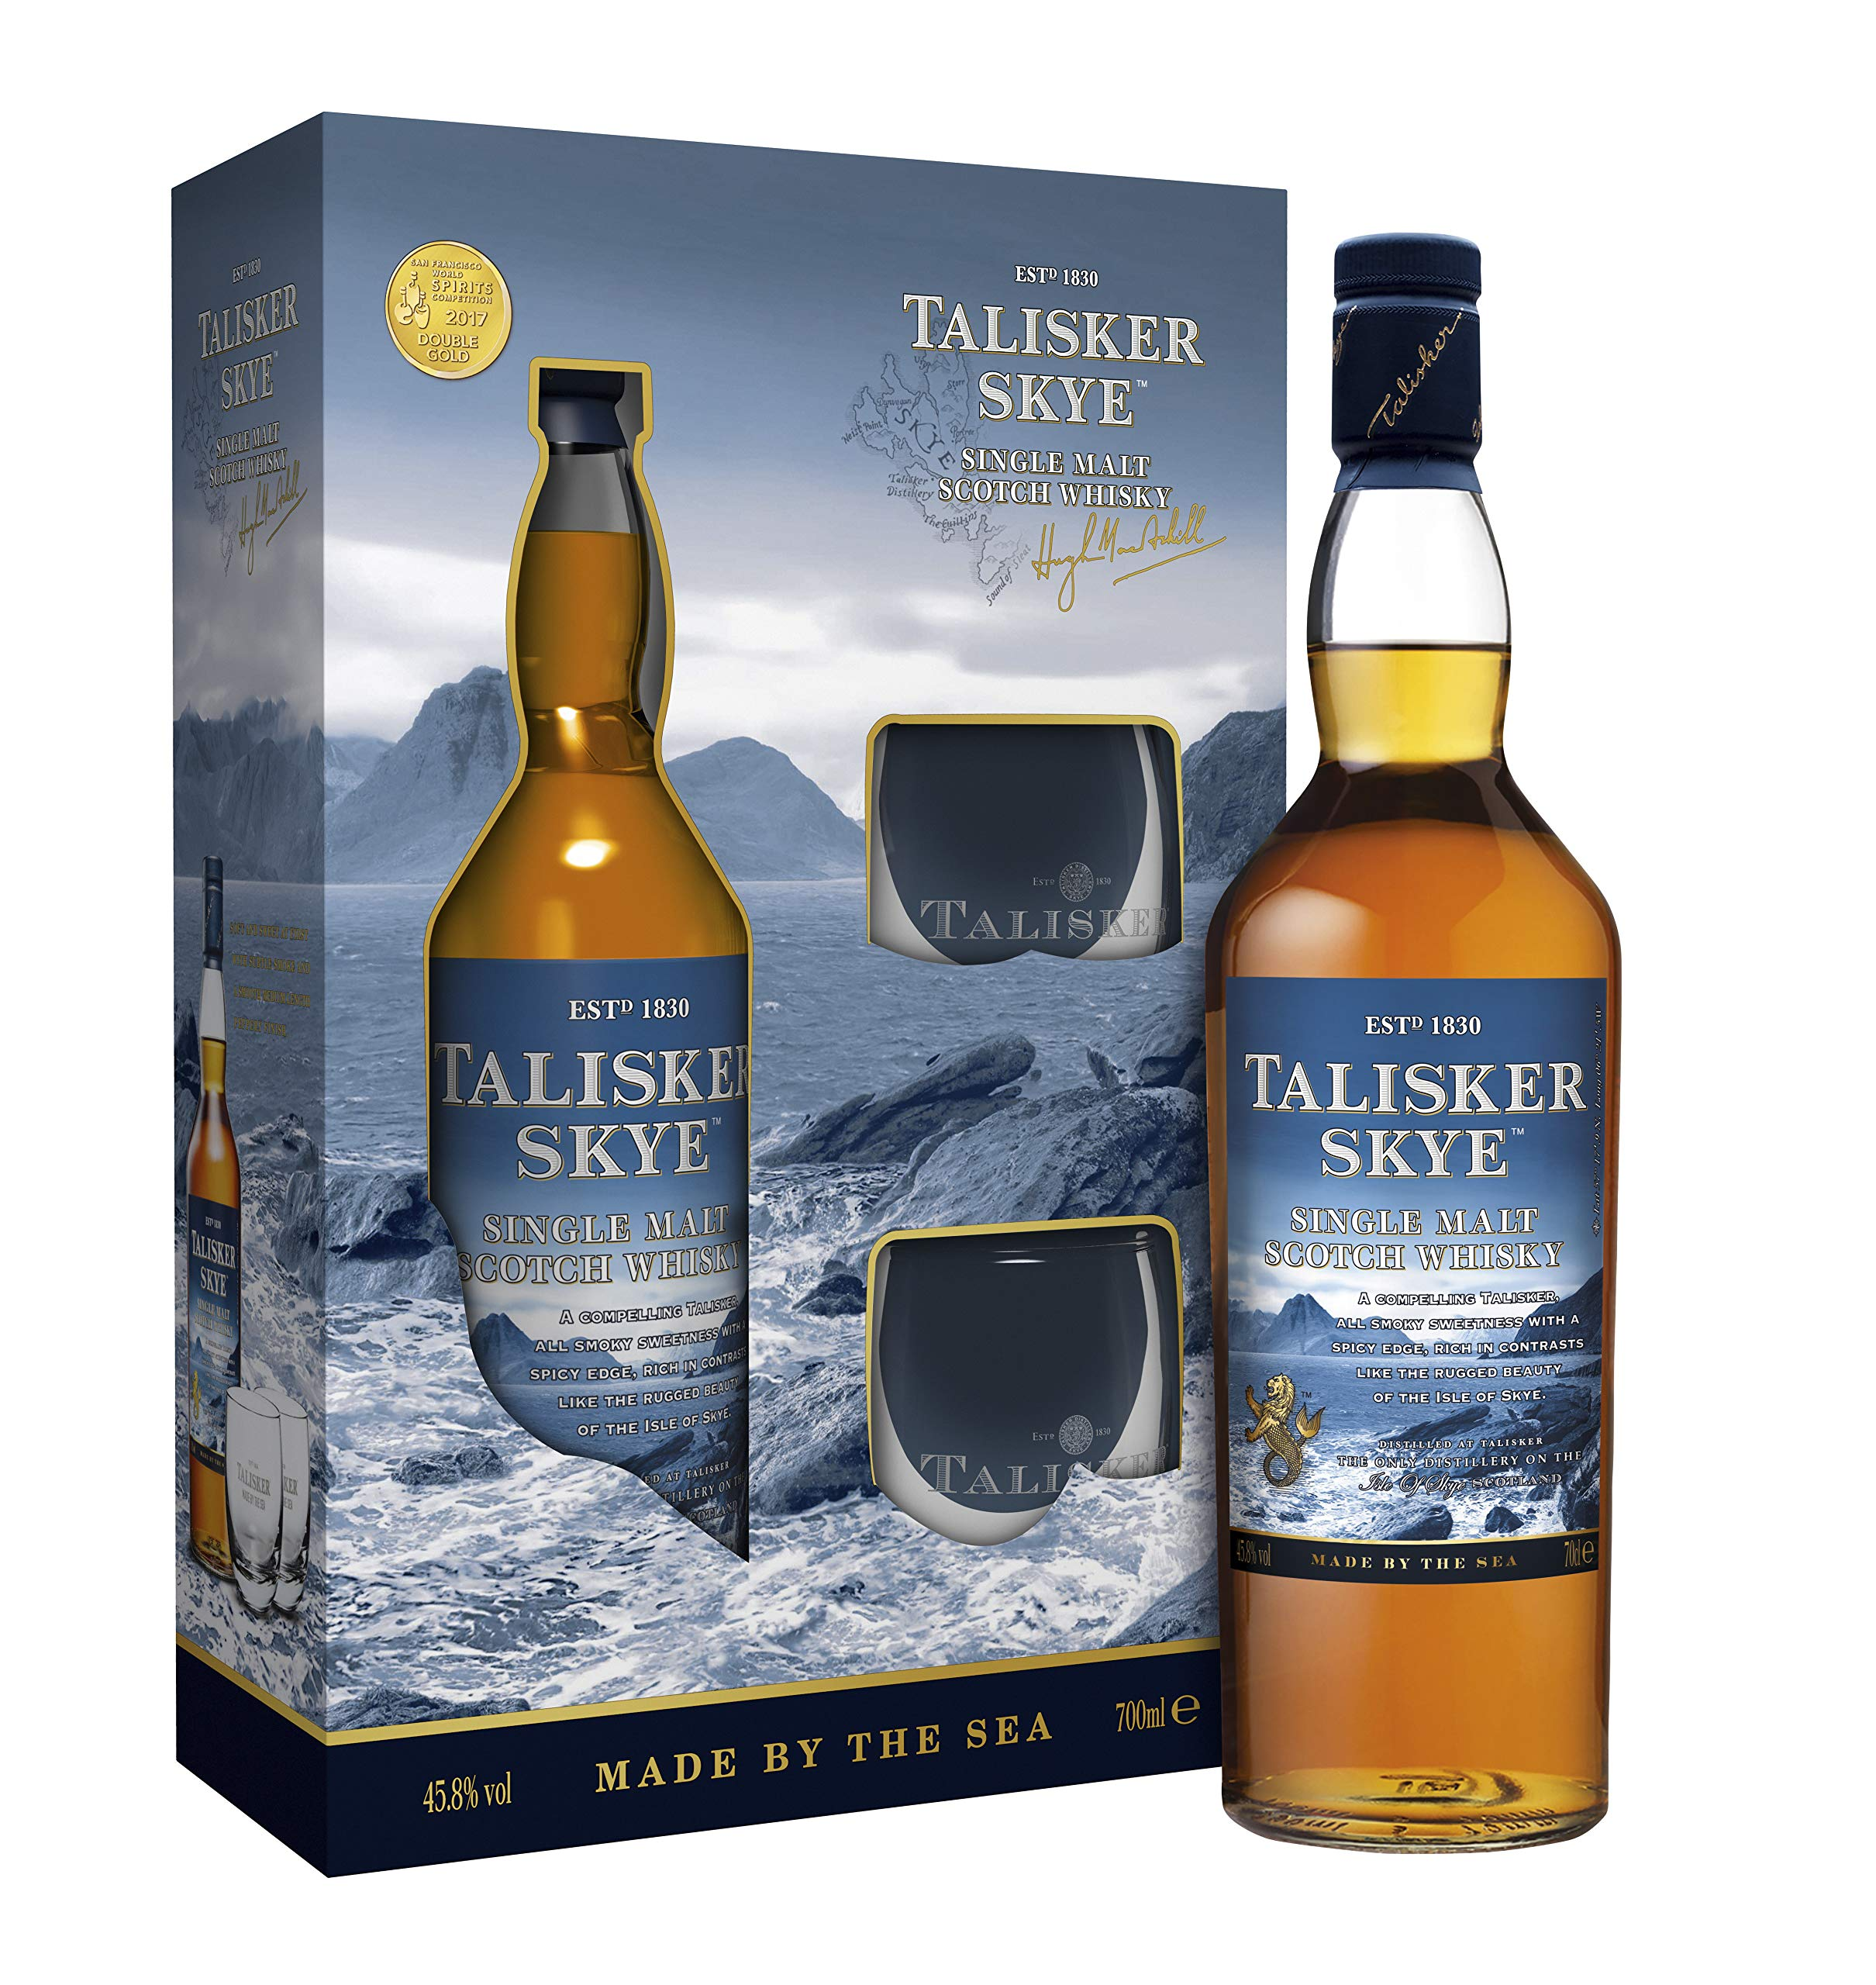 Talisker-Skye-mit-2-Glsern-Single-Malt-Whisky-1-x-07-l